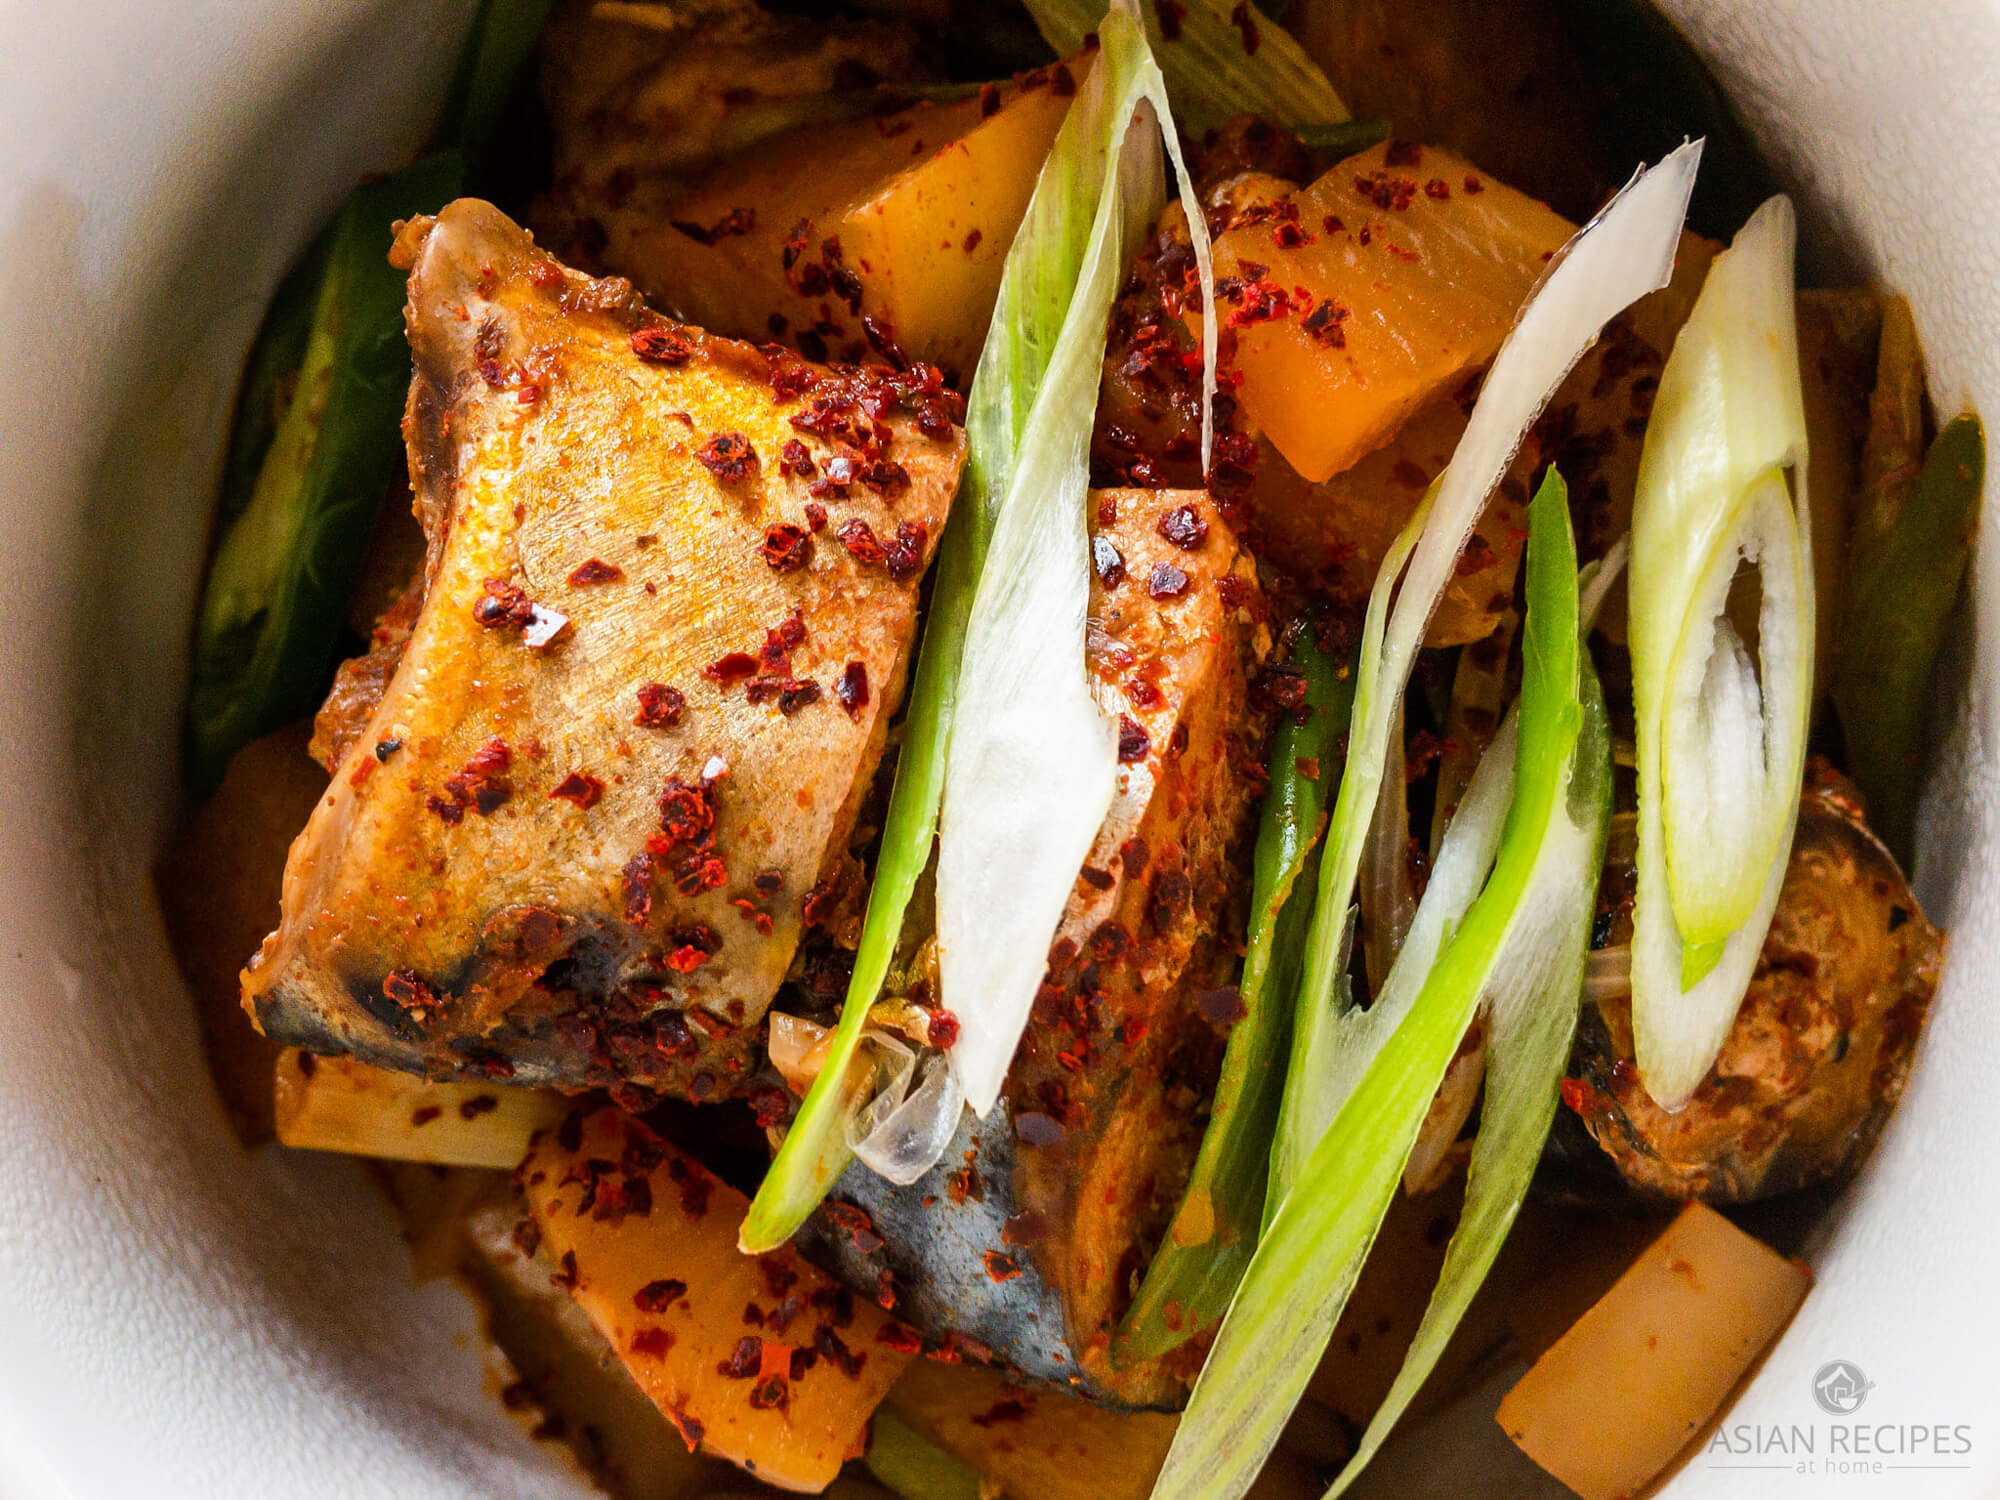 Mackerel fish and Korean radish are the stars in this delicious and spicy Korean braised dish.